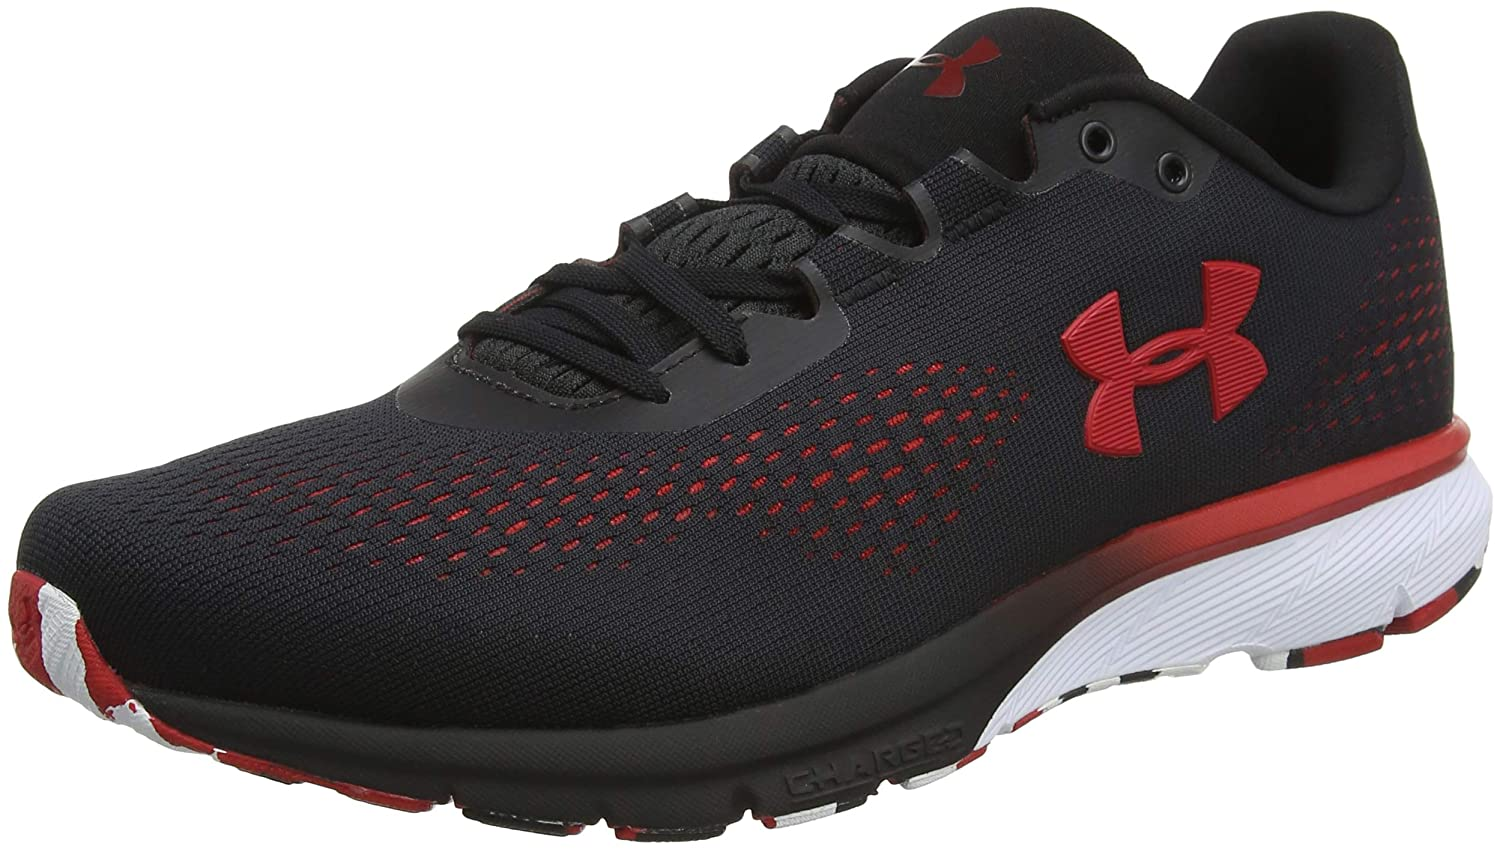 Under Armour Herren UA Charged Charged Charged Spark Laufschuhe  133f92